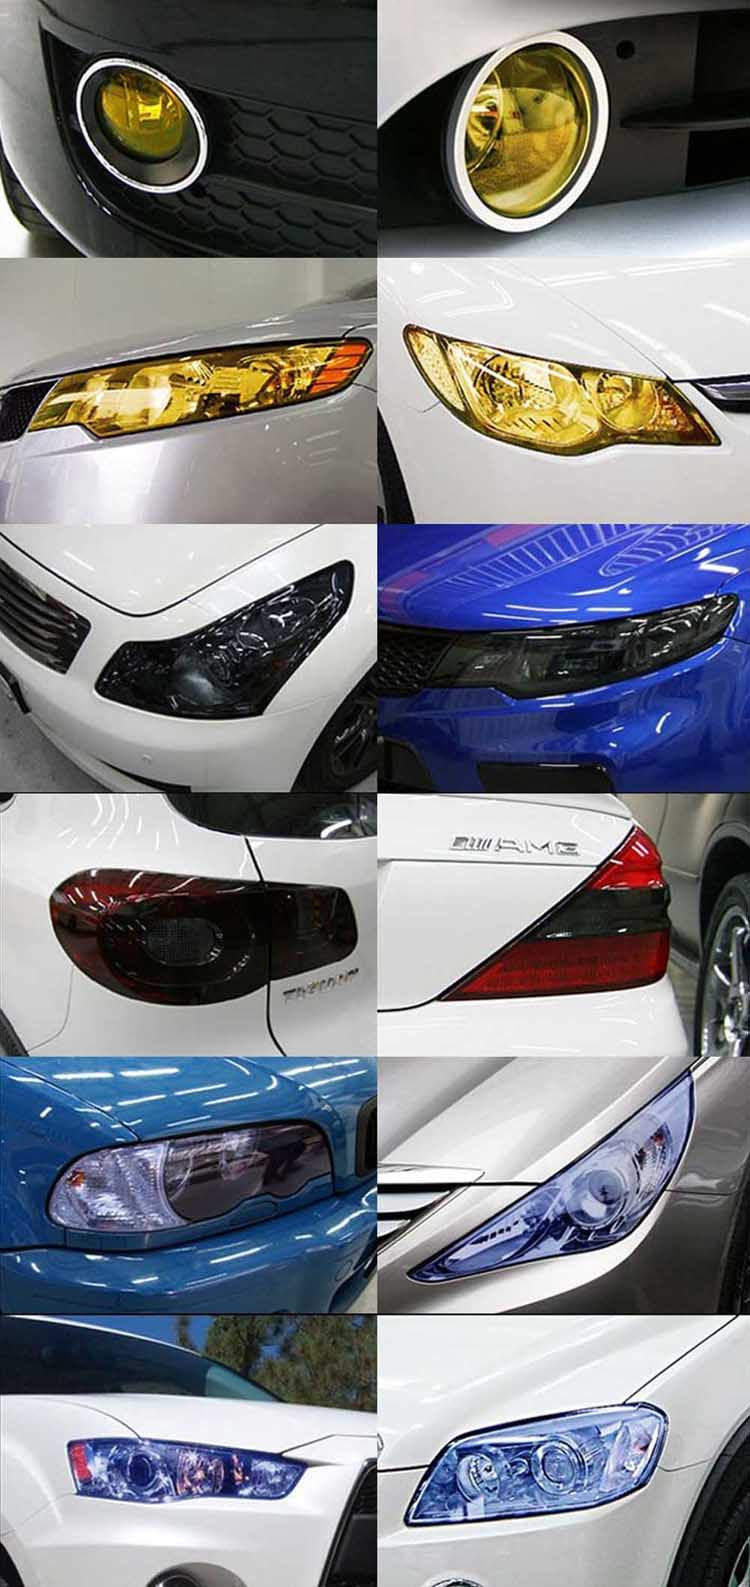 1 Piece New Auto Car Sticker Smoke Fog Light Headlight Taillight Tint Vinyl Film Sheet Car